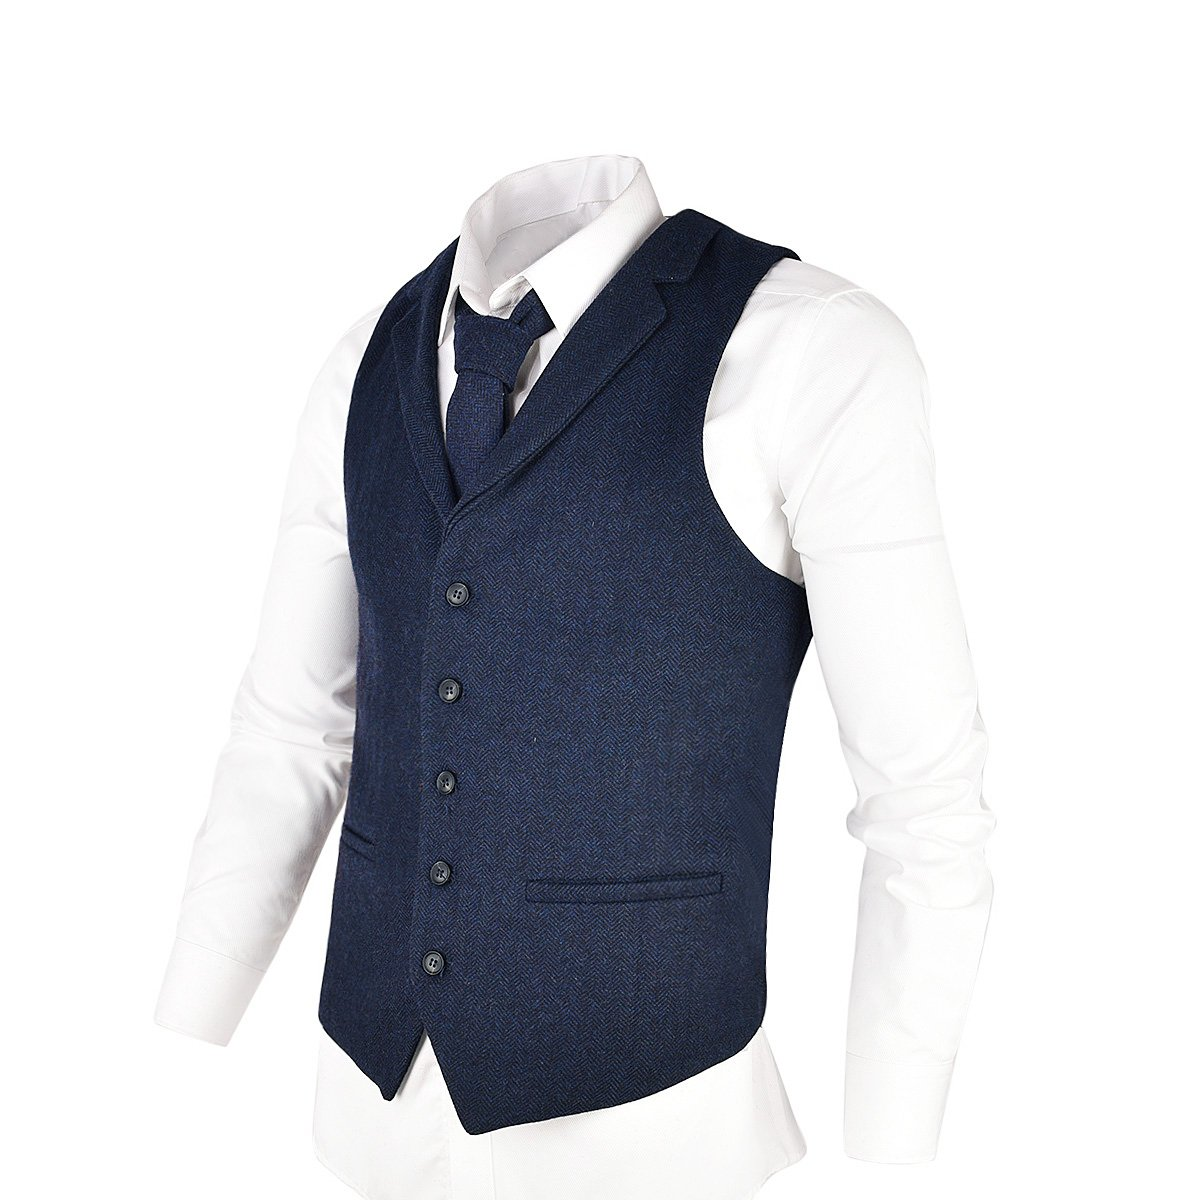 Peaky Blinders & Boardwalk Empire: Men's 1920s Gangster Clothing VOBOOM Mens Herringbone Tailored Collar Waistcoat Fullback Wool Tweed Suit Vest £32.99 AT vintagedancer.com